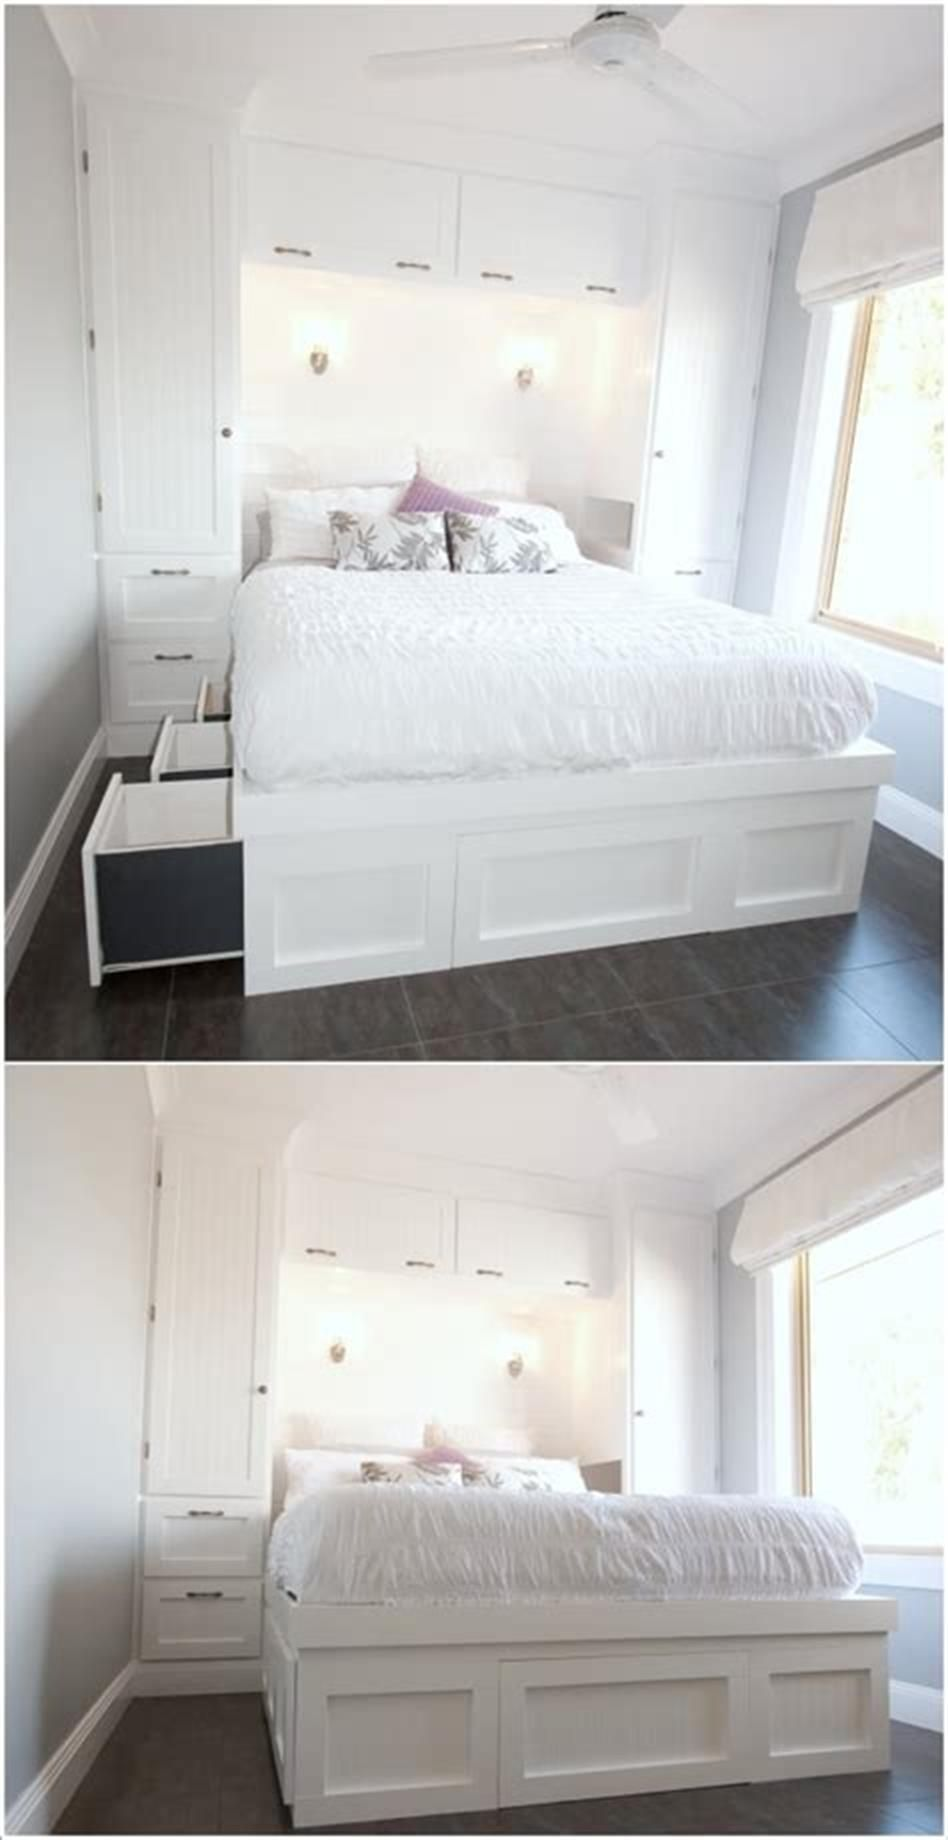 Best 45 storage ideas for small bedrooms on a budget - Small bedroom decorating ideas on a budget ...